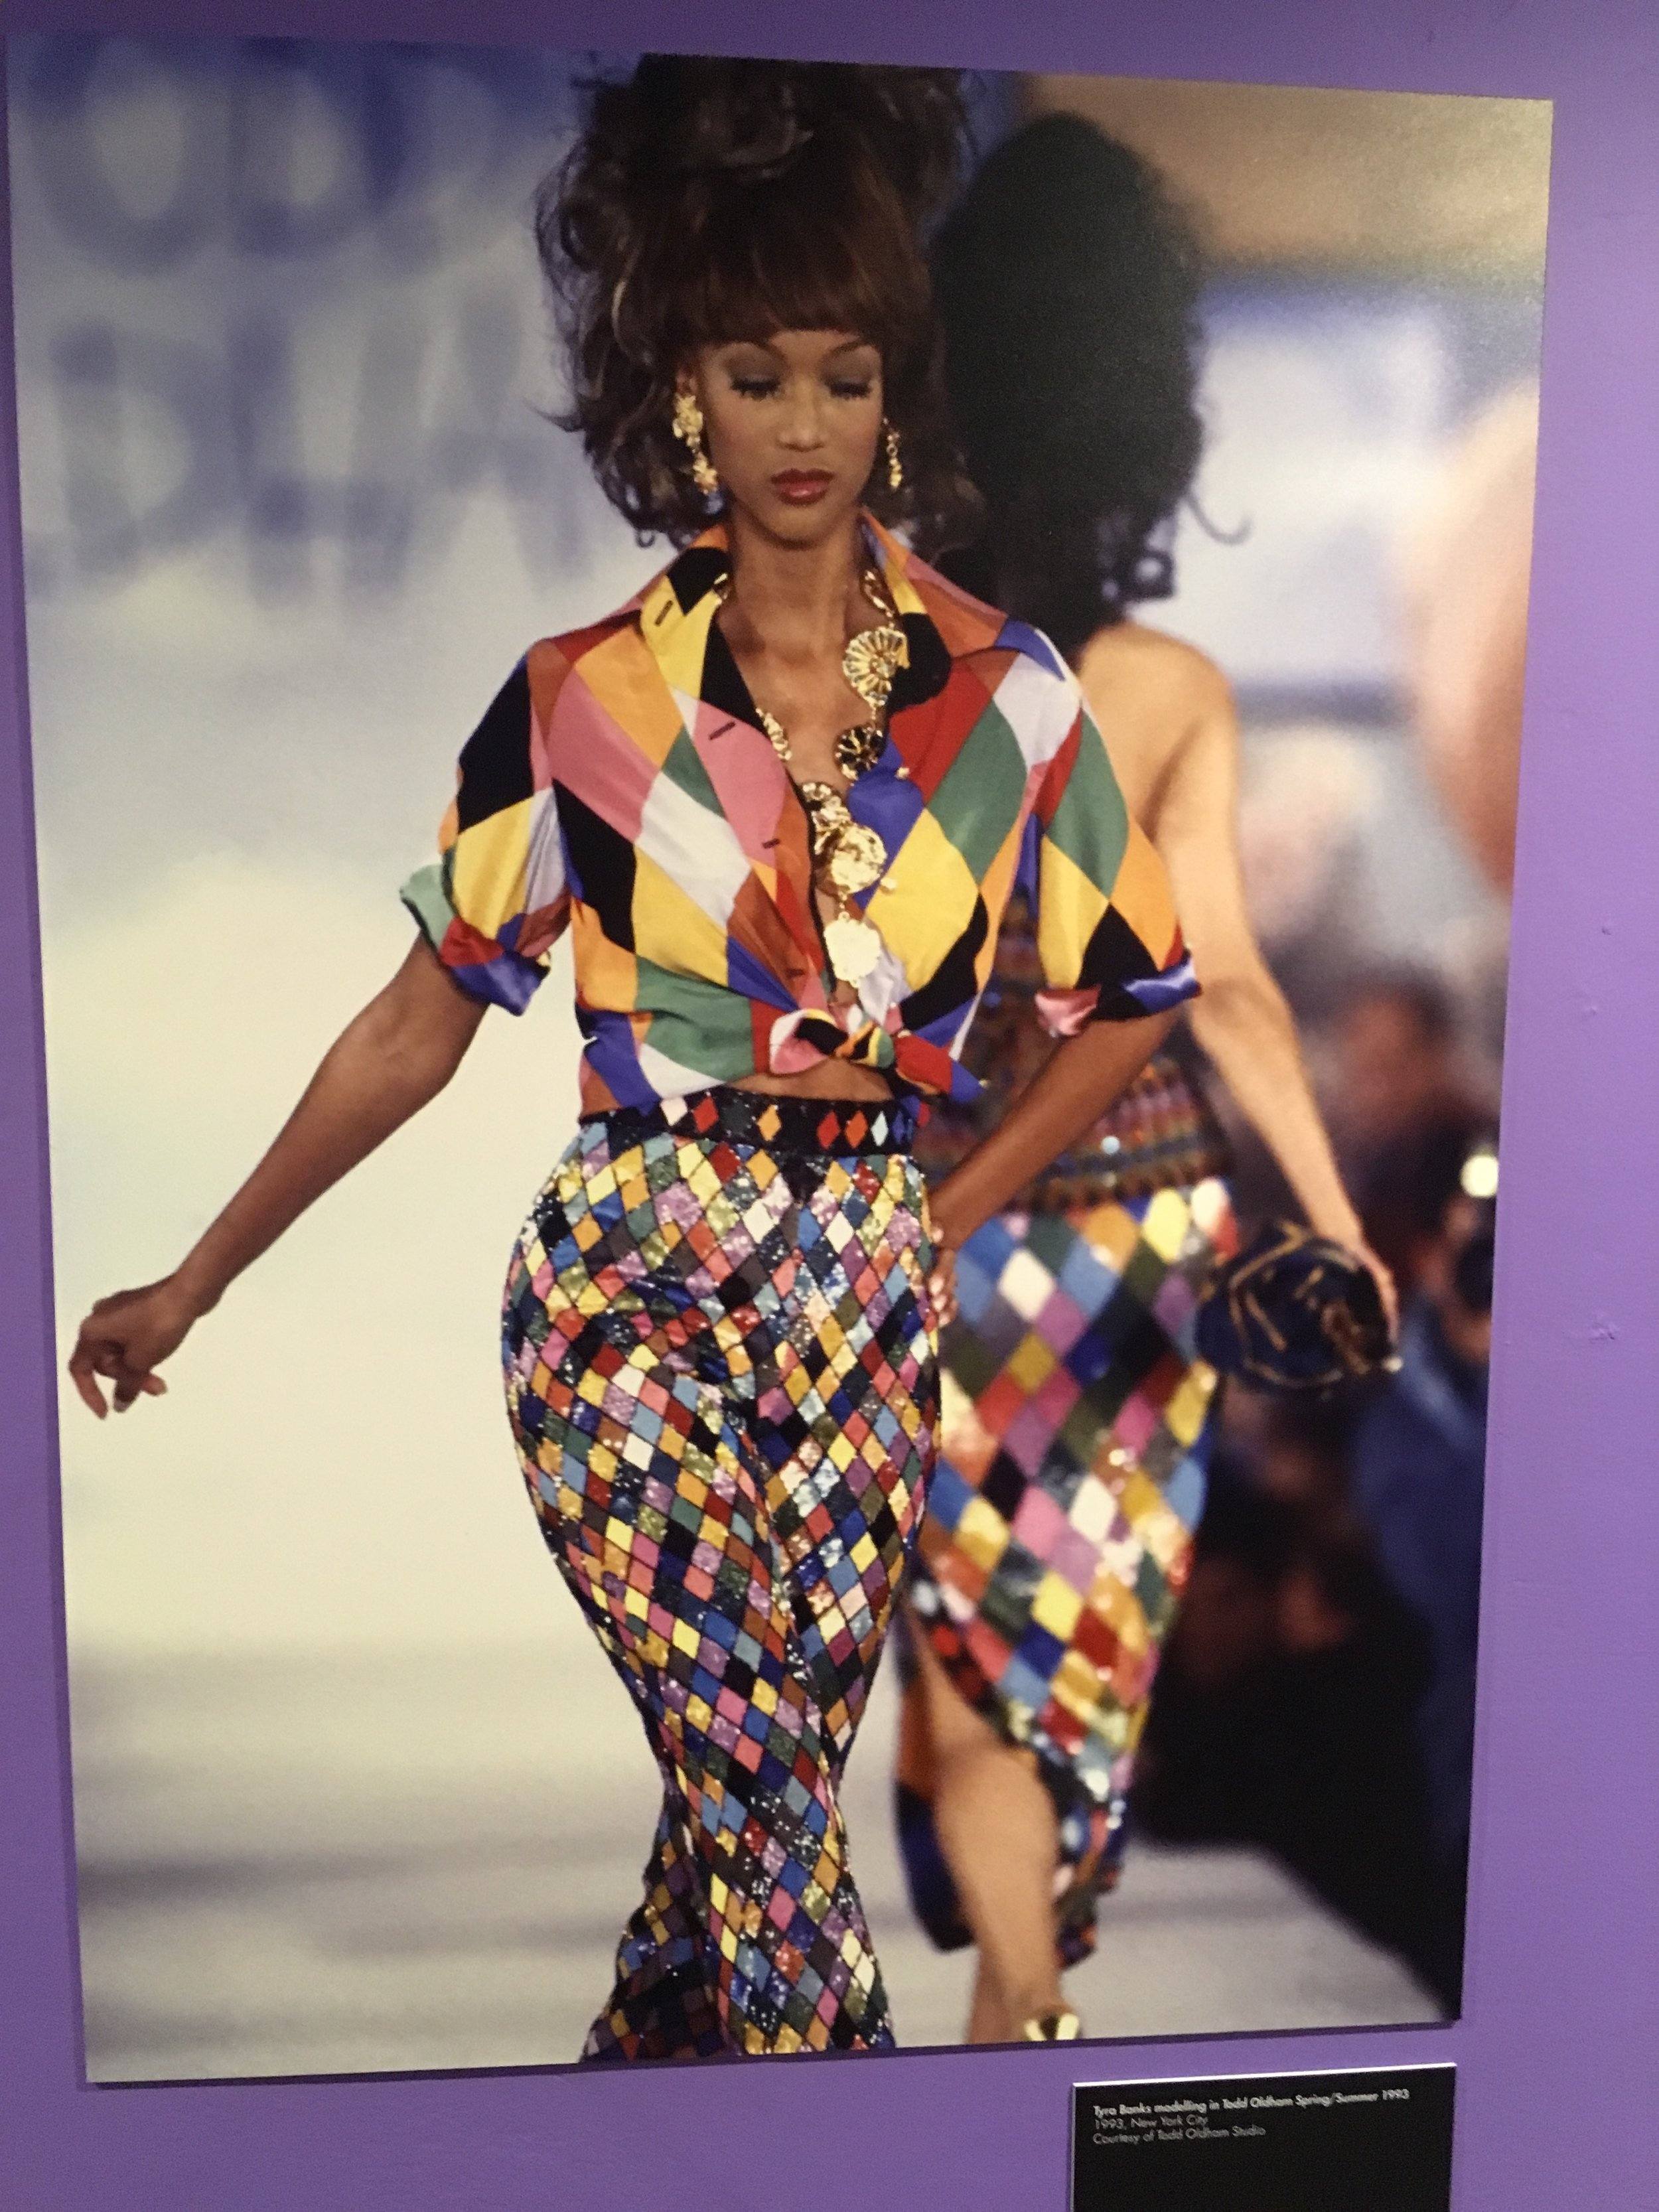 Fashion stylists London: Anna Sui's first runway show in 1991. This show earned her international acclaim.  (Love the harlequin print!).